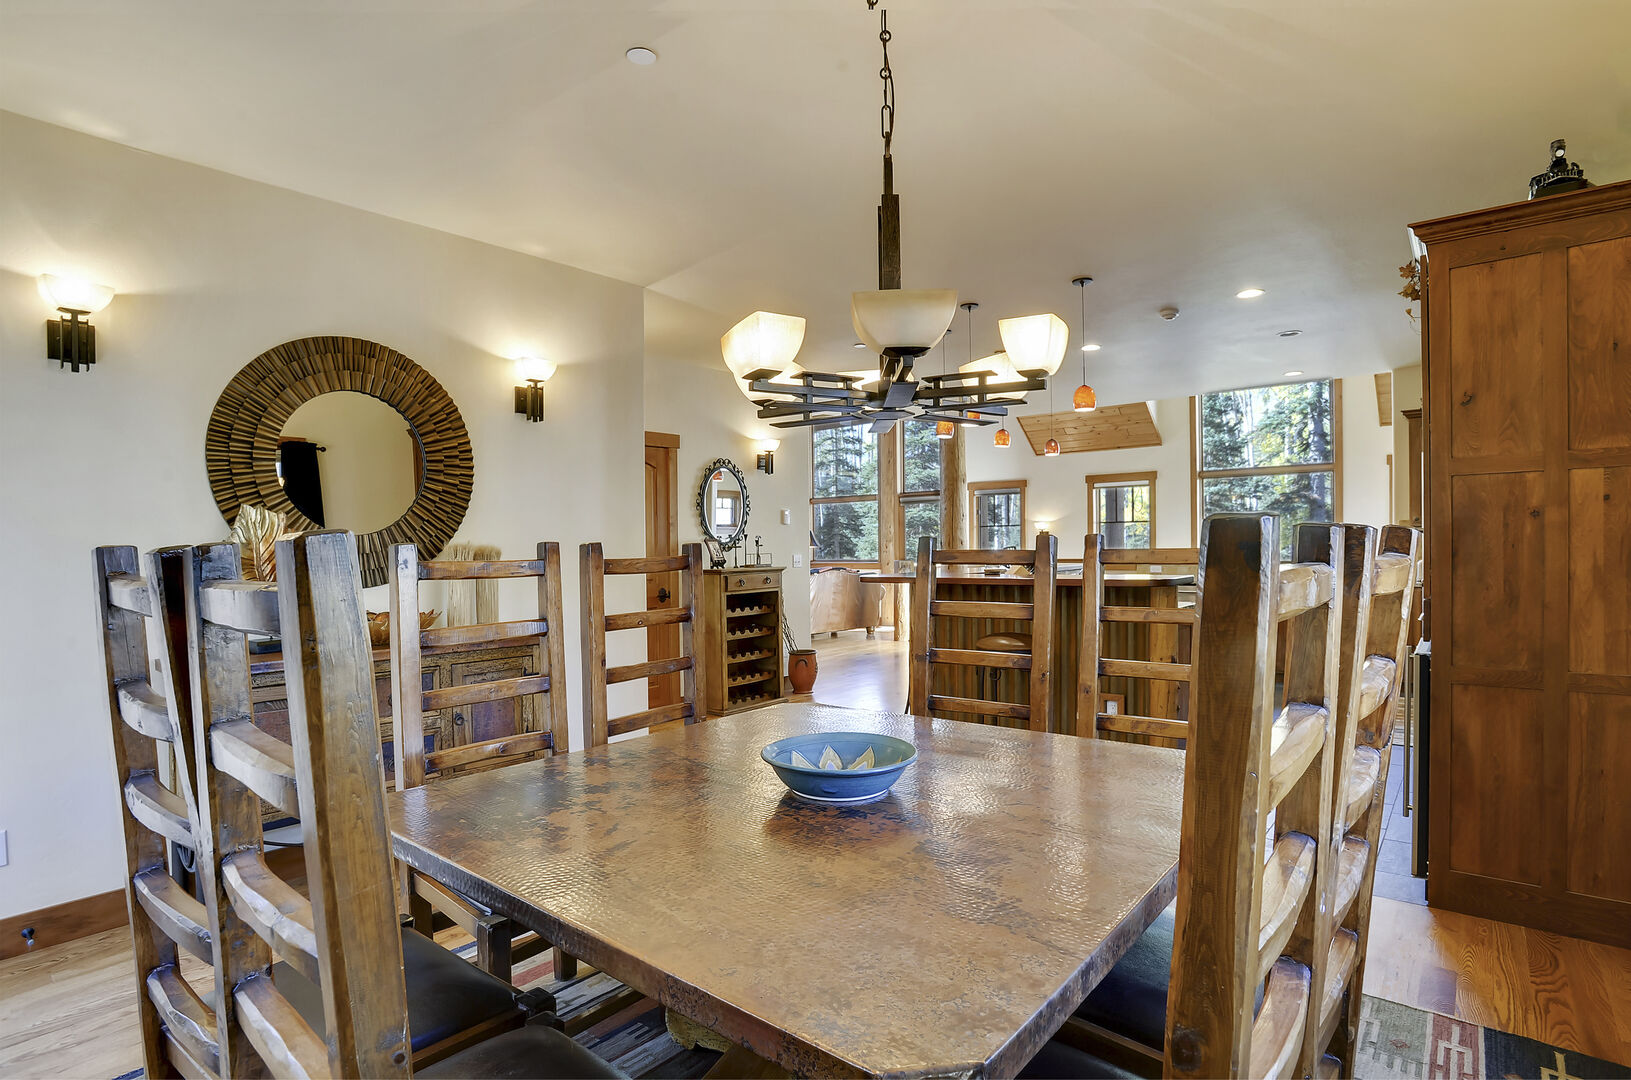 Dining table seats 8